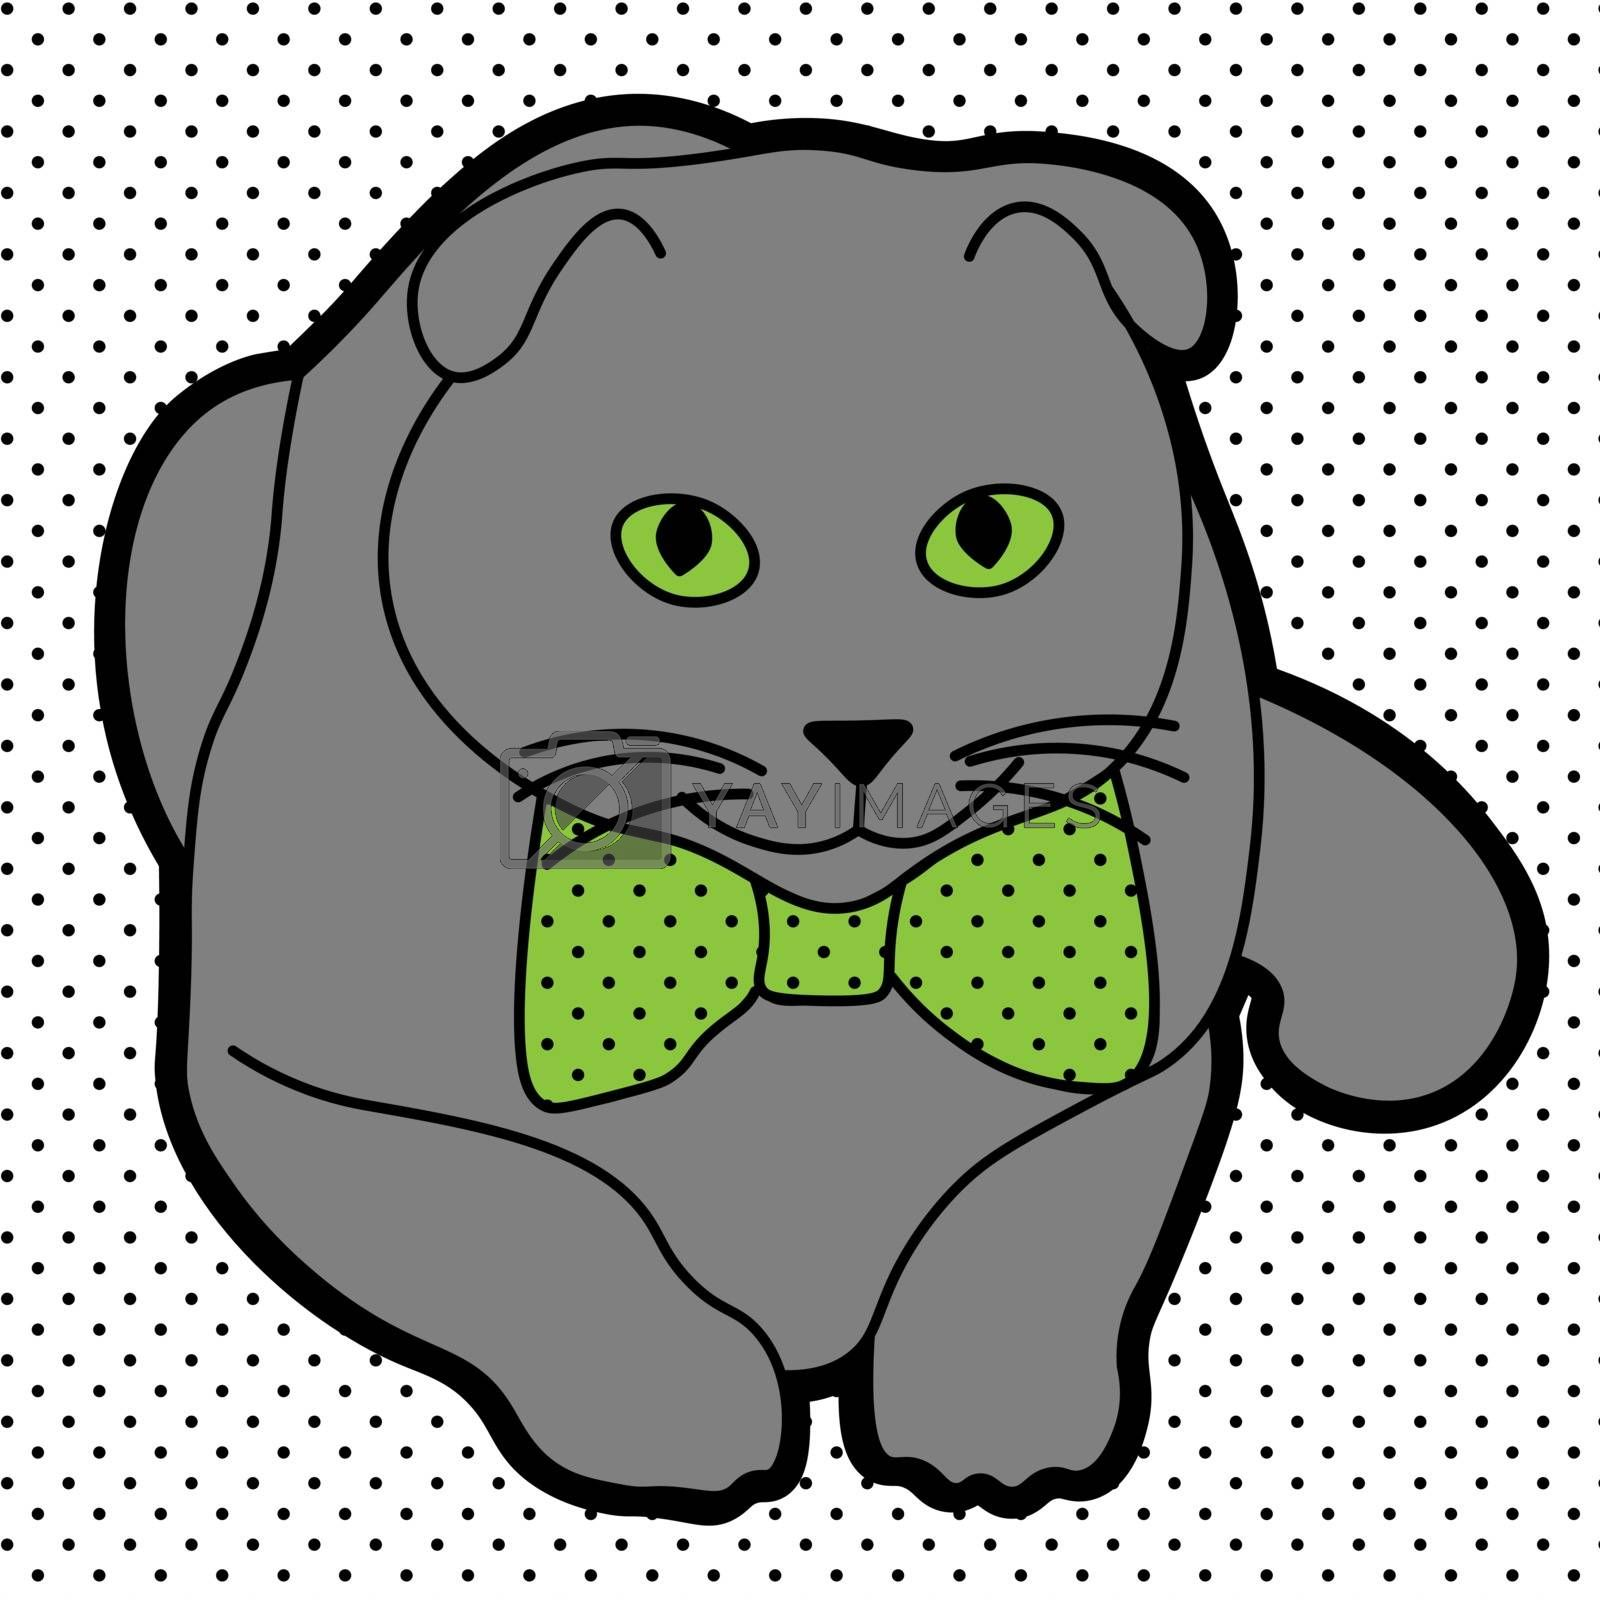 Cute and cheerful grey cat with green eyes and bow tie on dotted background